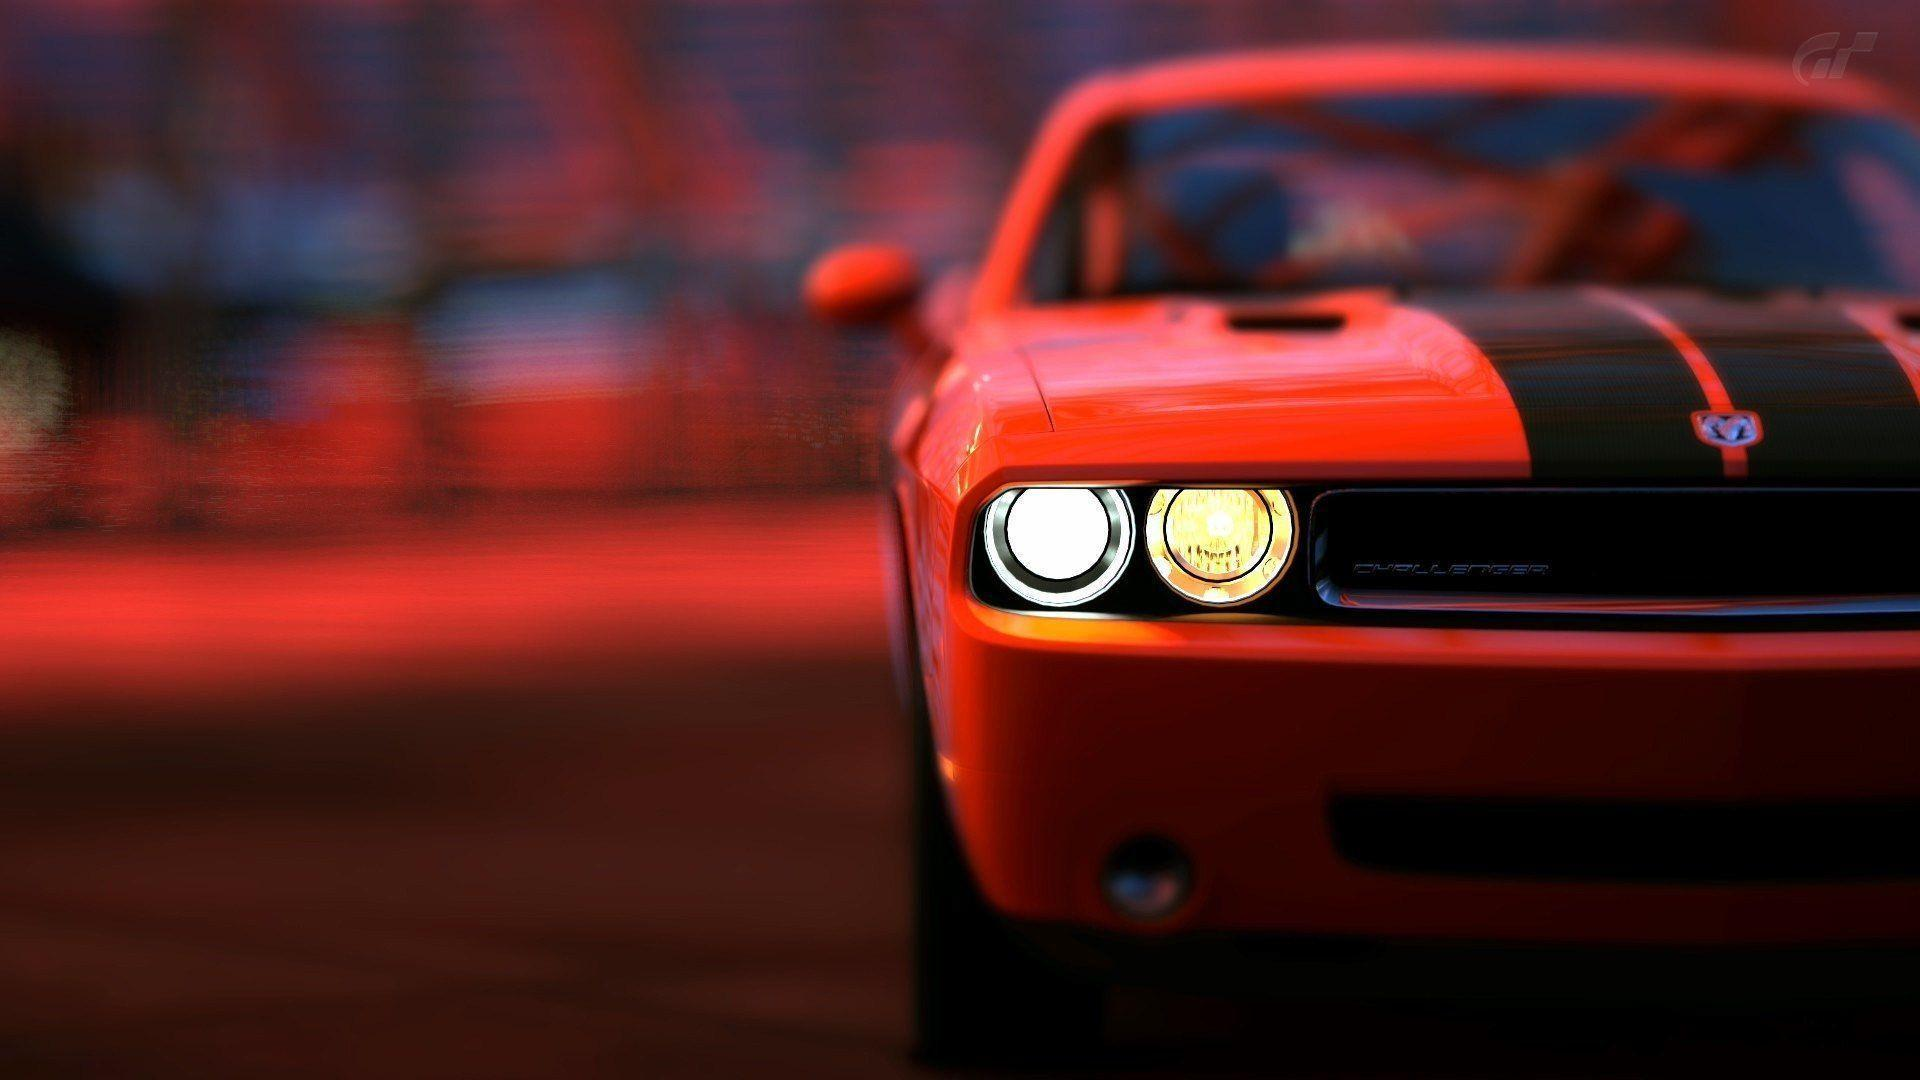 Challenger Hd Wallpaper Dodge Challenger Hd Wallpapers Wallpaper Cave